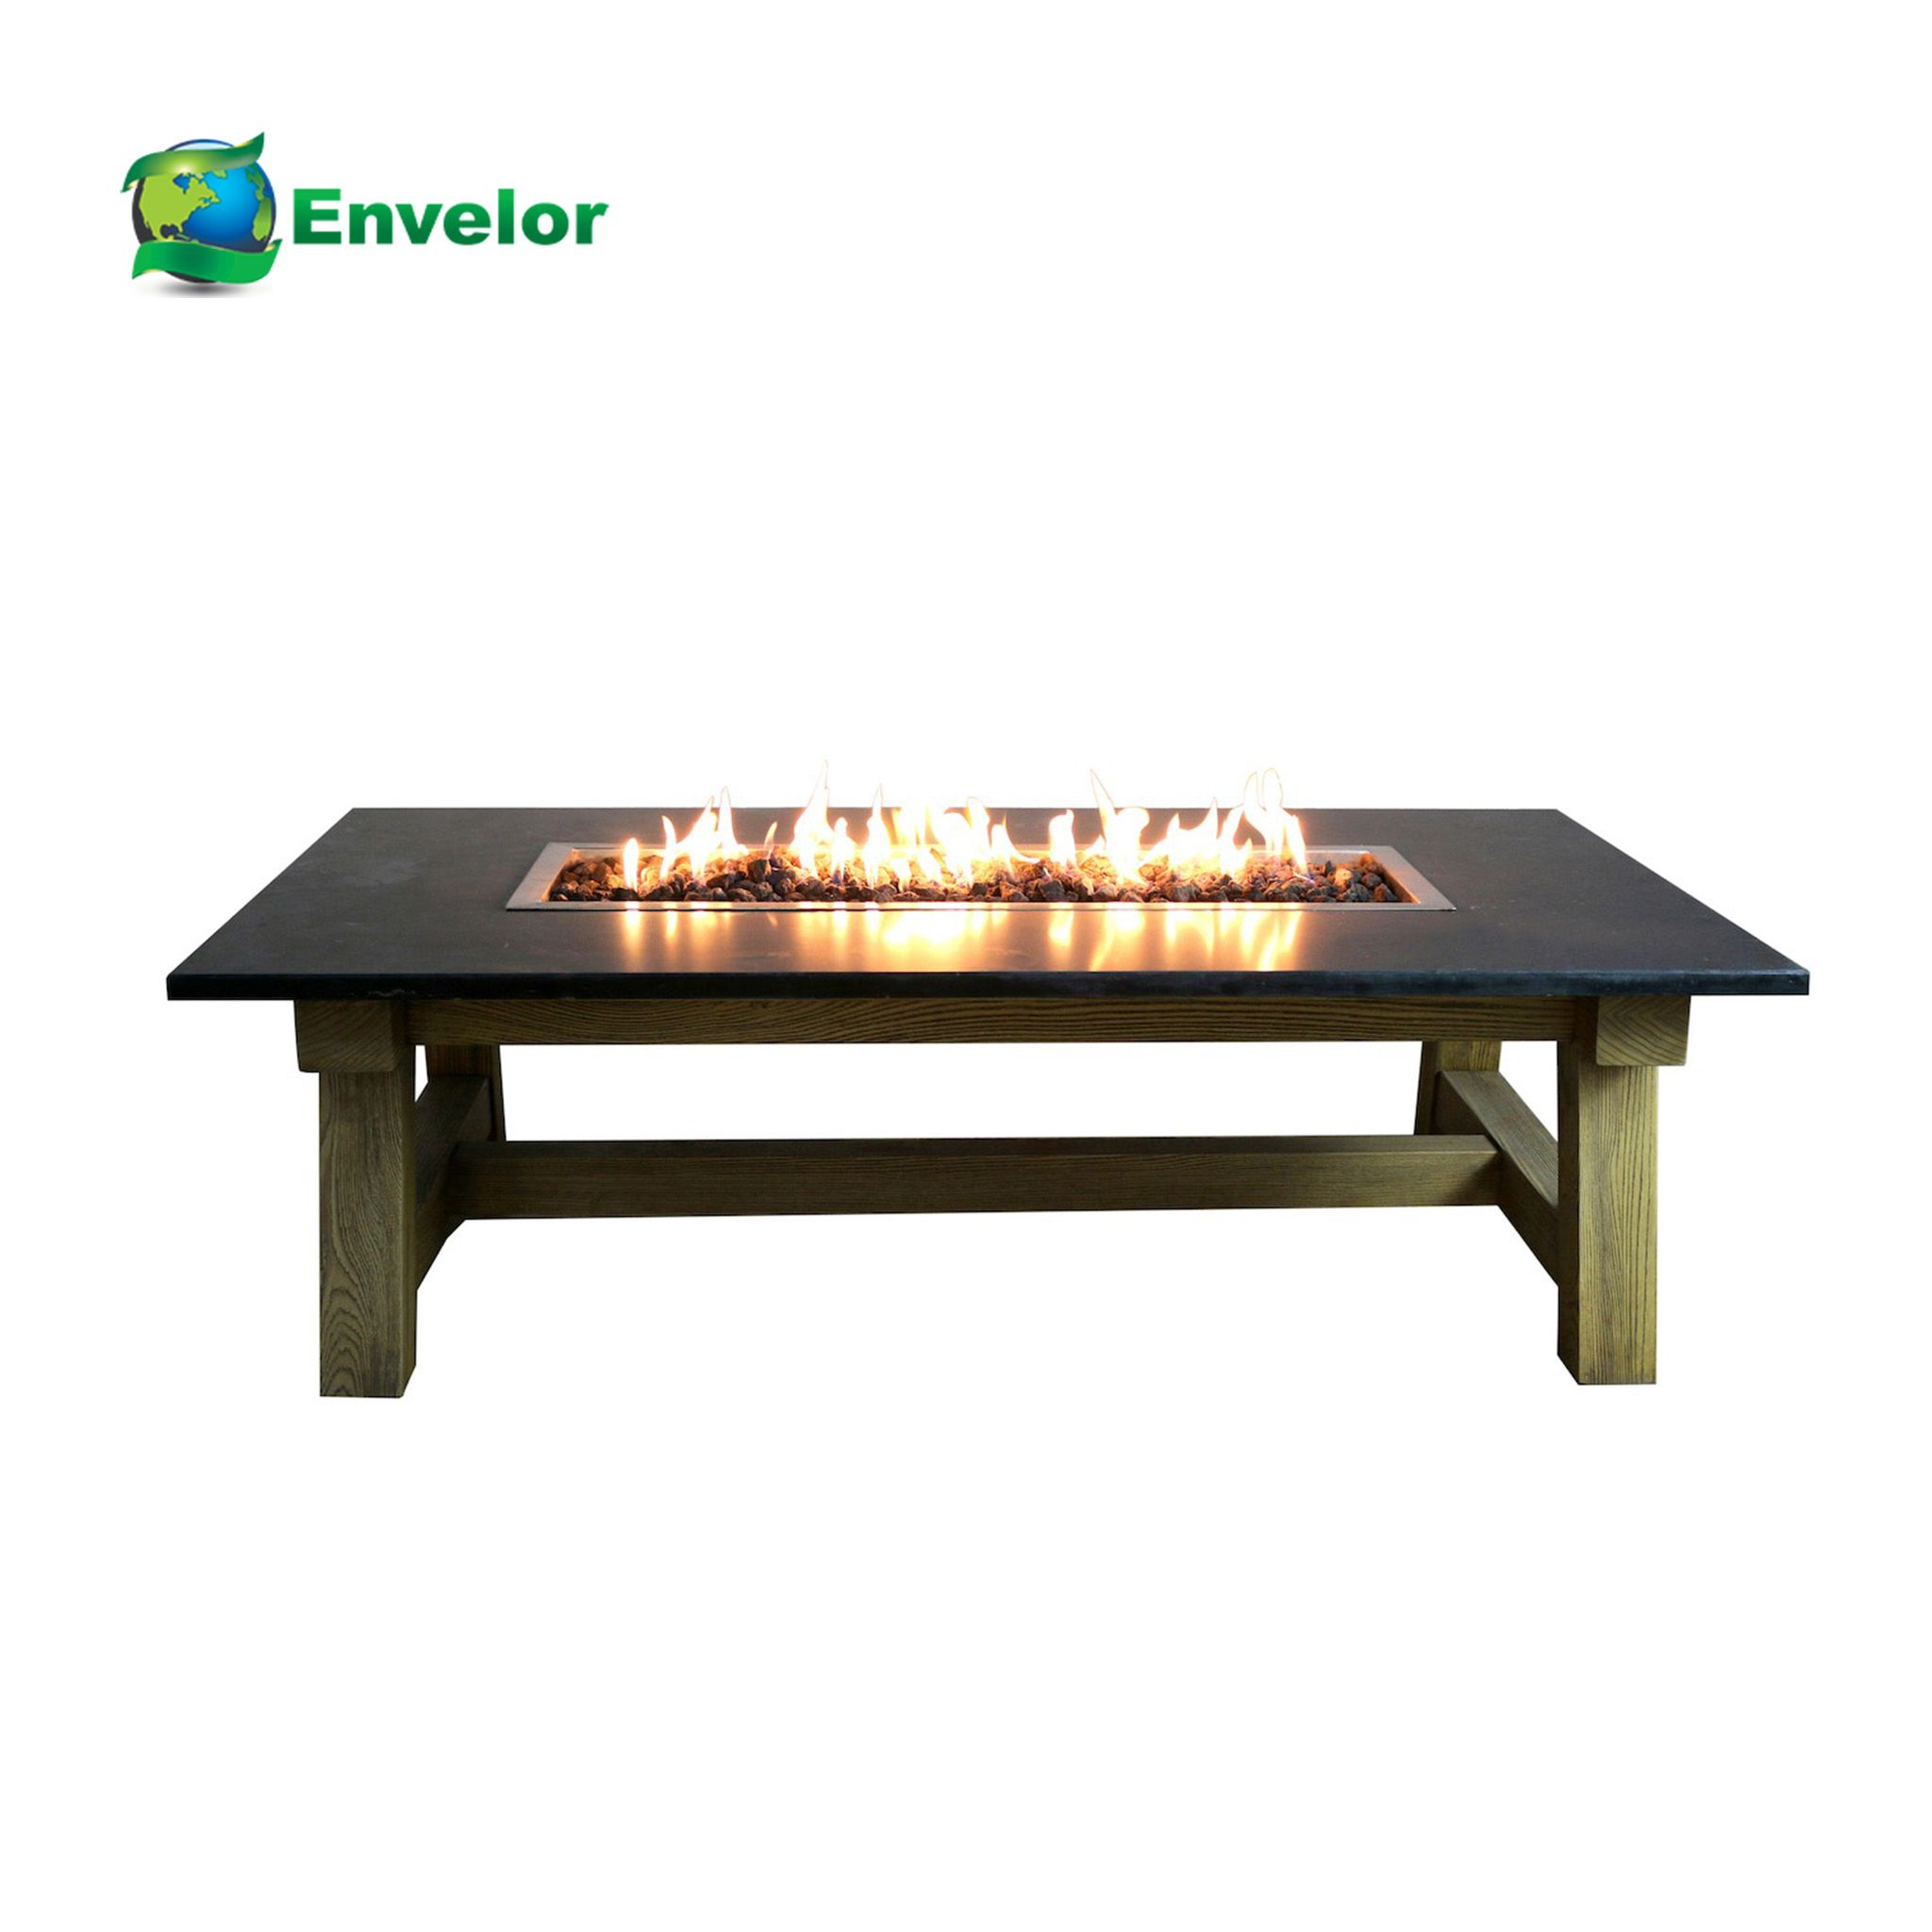 Outdoor Amish Fire Pit Table Fire Pit Table Fire Bowls Fire Table